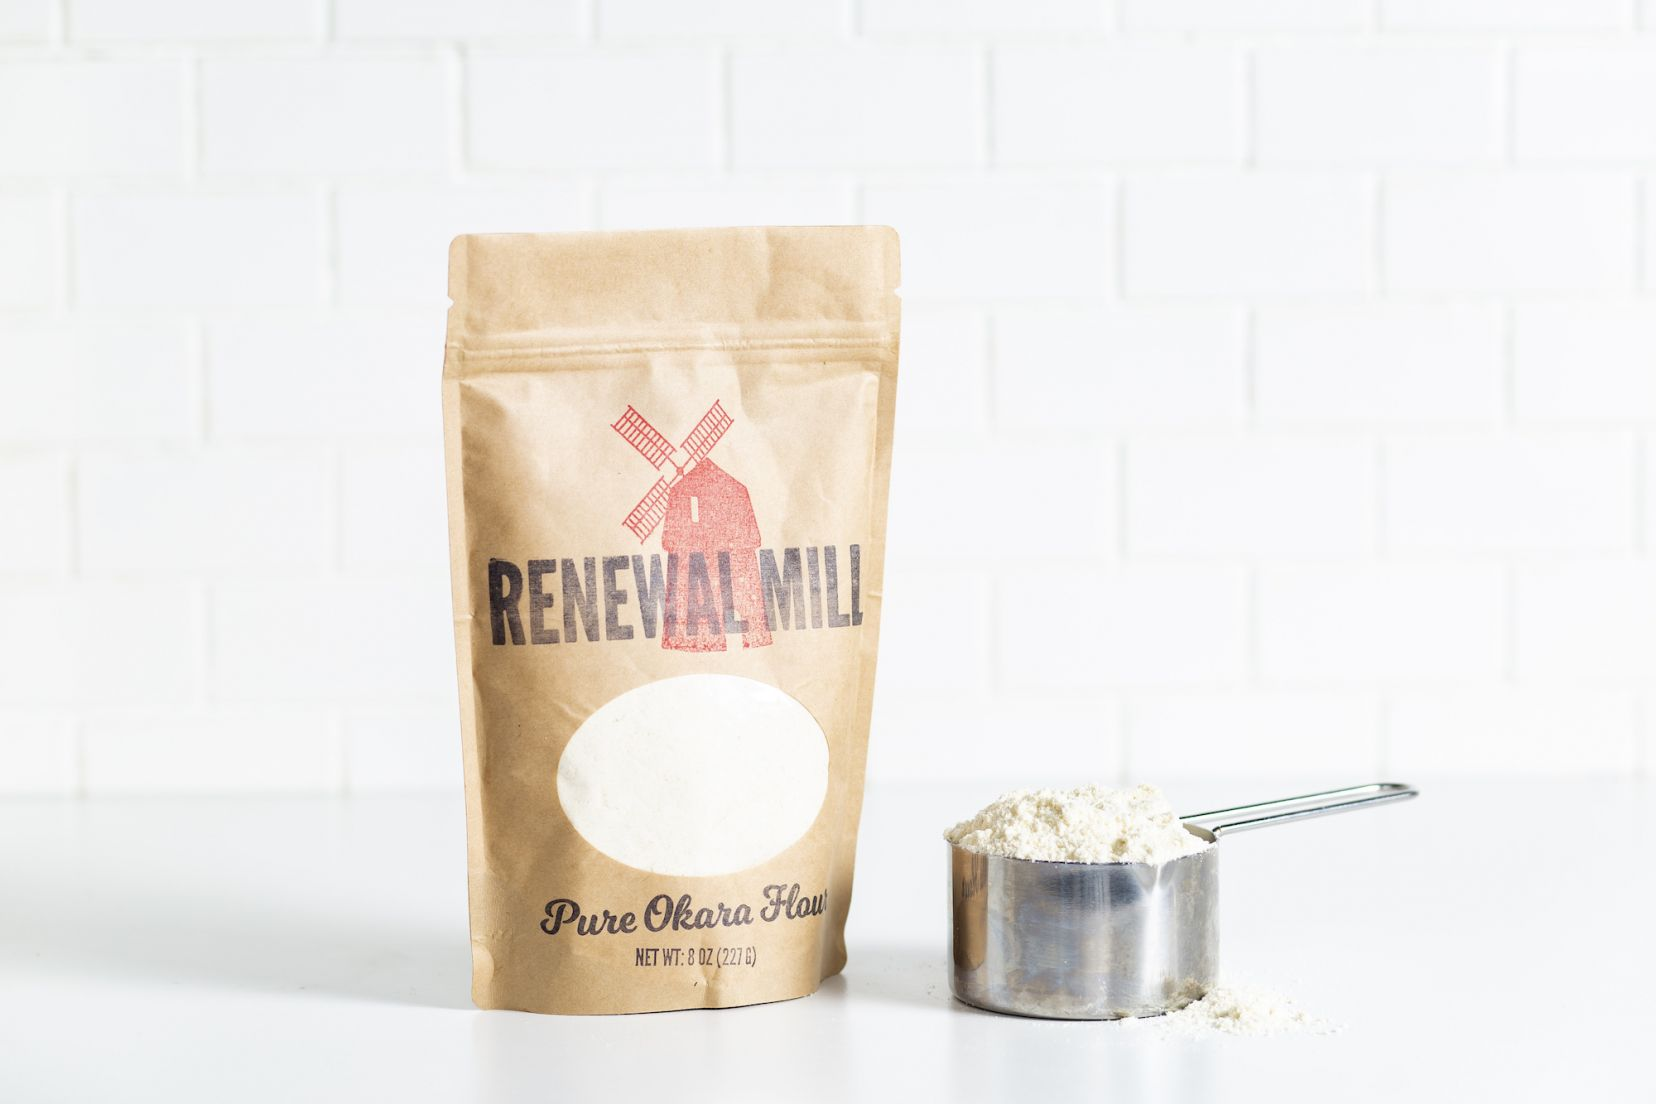 Renewal Mill Flour Bag with Cup